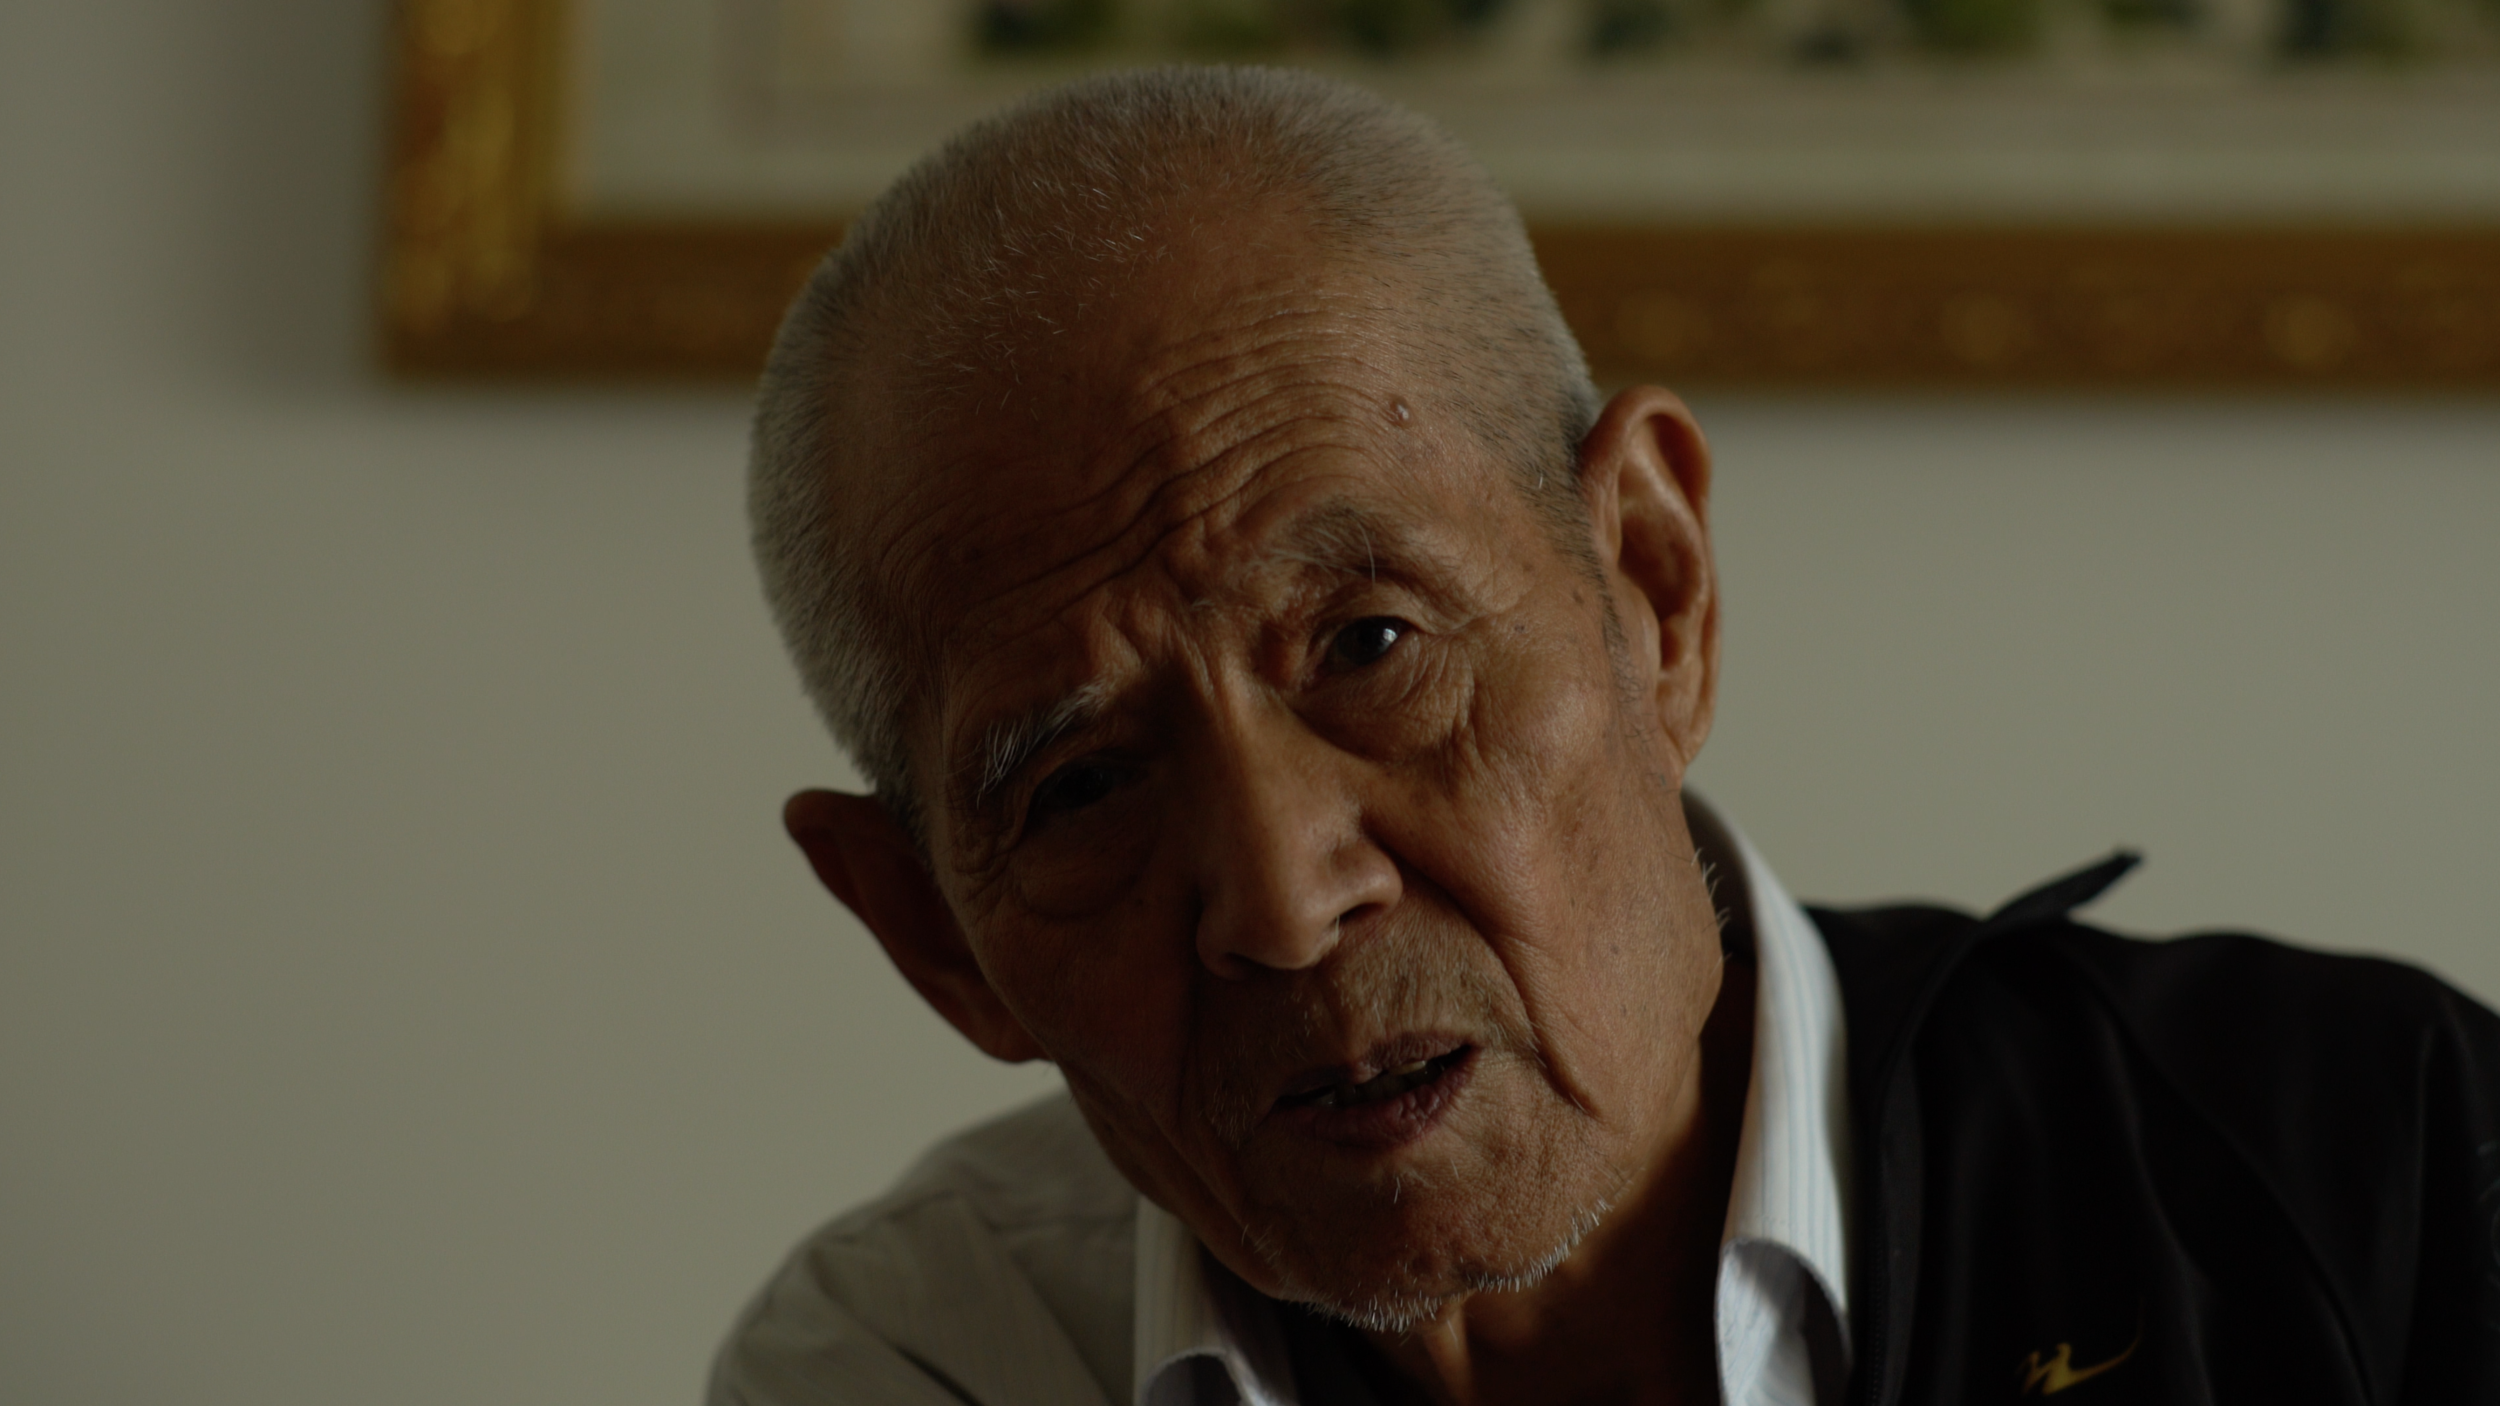 Chen Zonghai, 85 years-old.